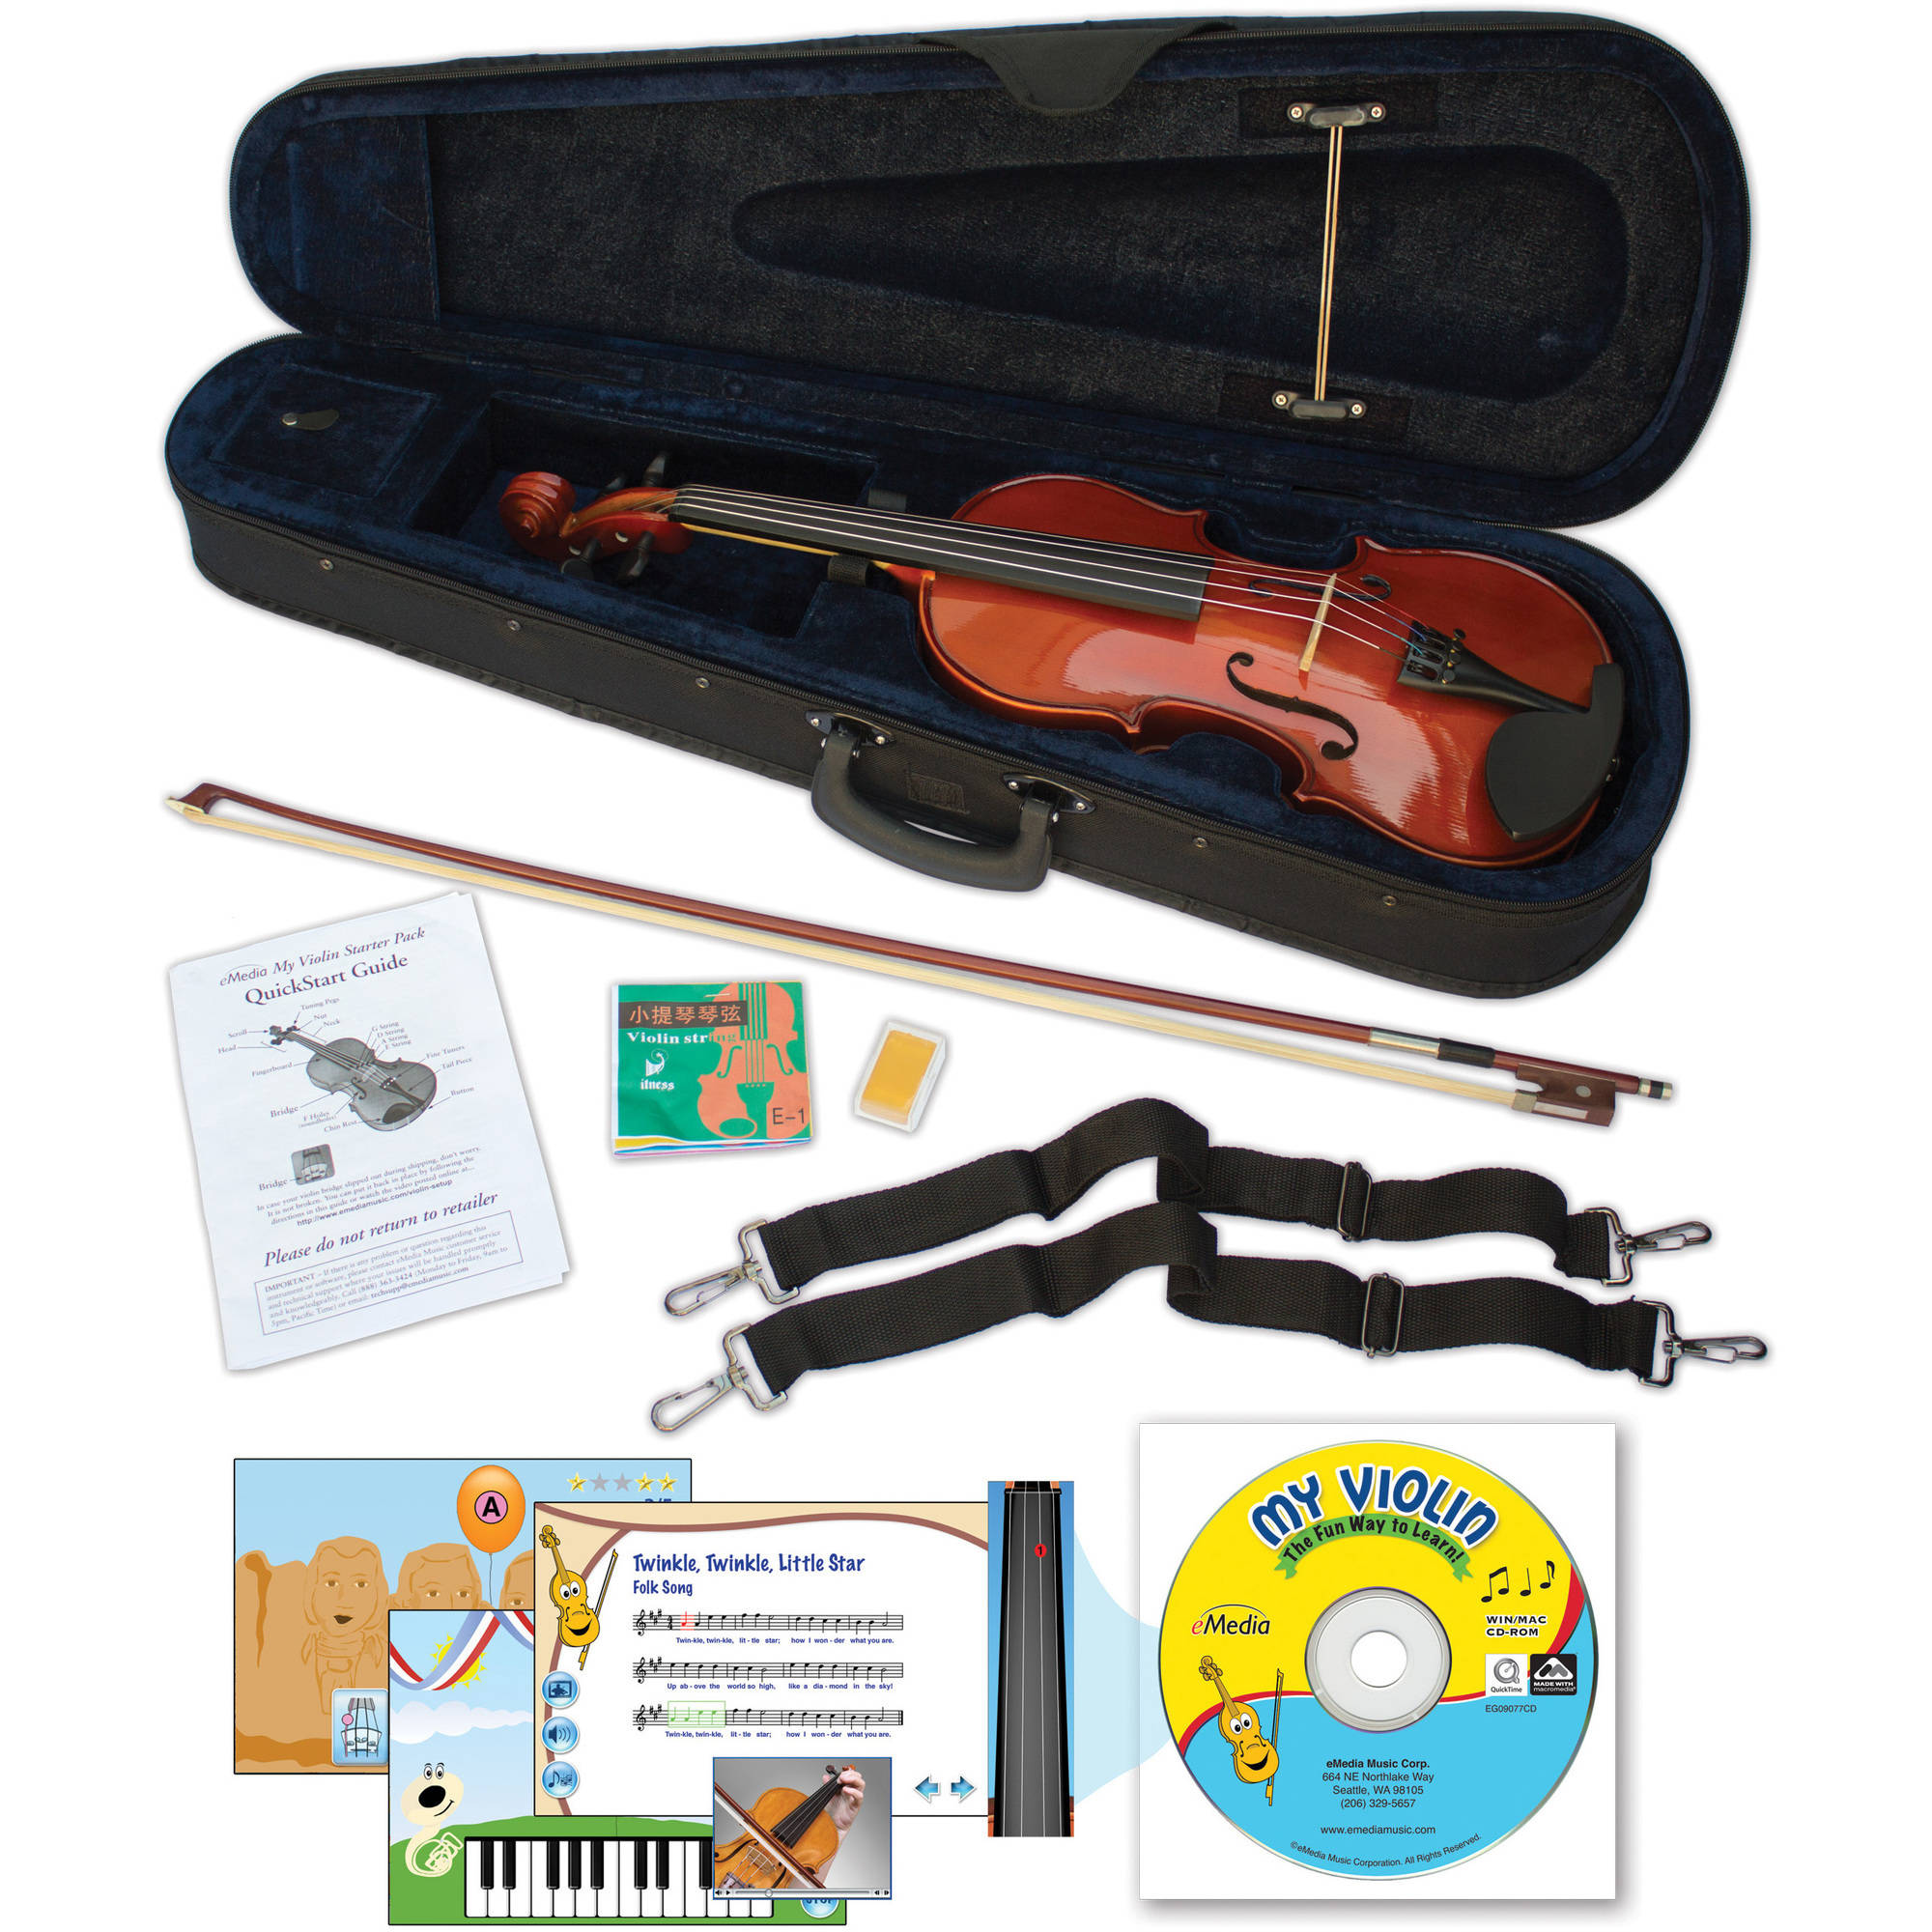 eMedia My Violin Starter Pack for Kids (3 4-Size) by Emedia Music